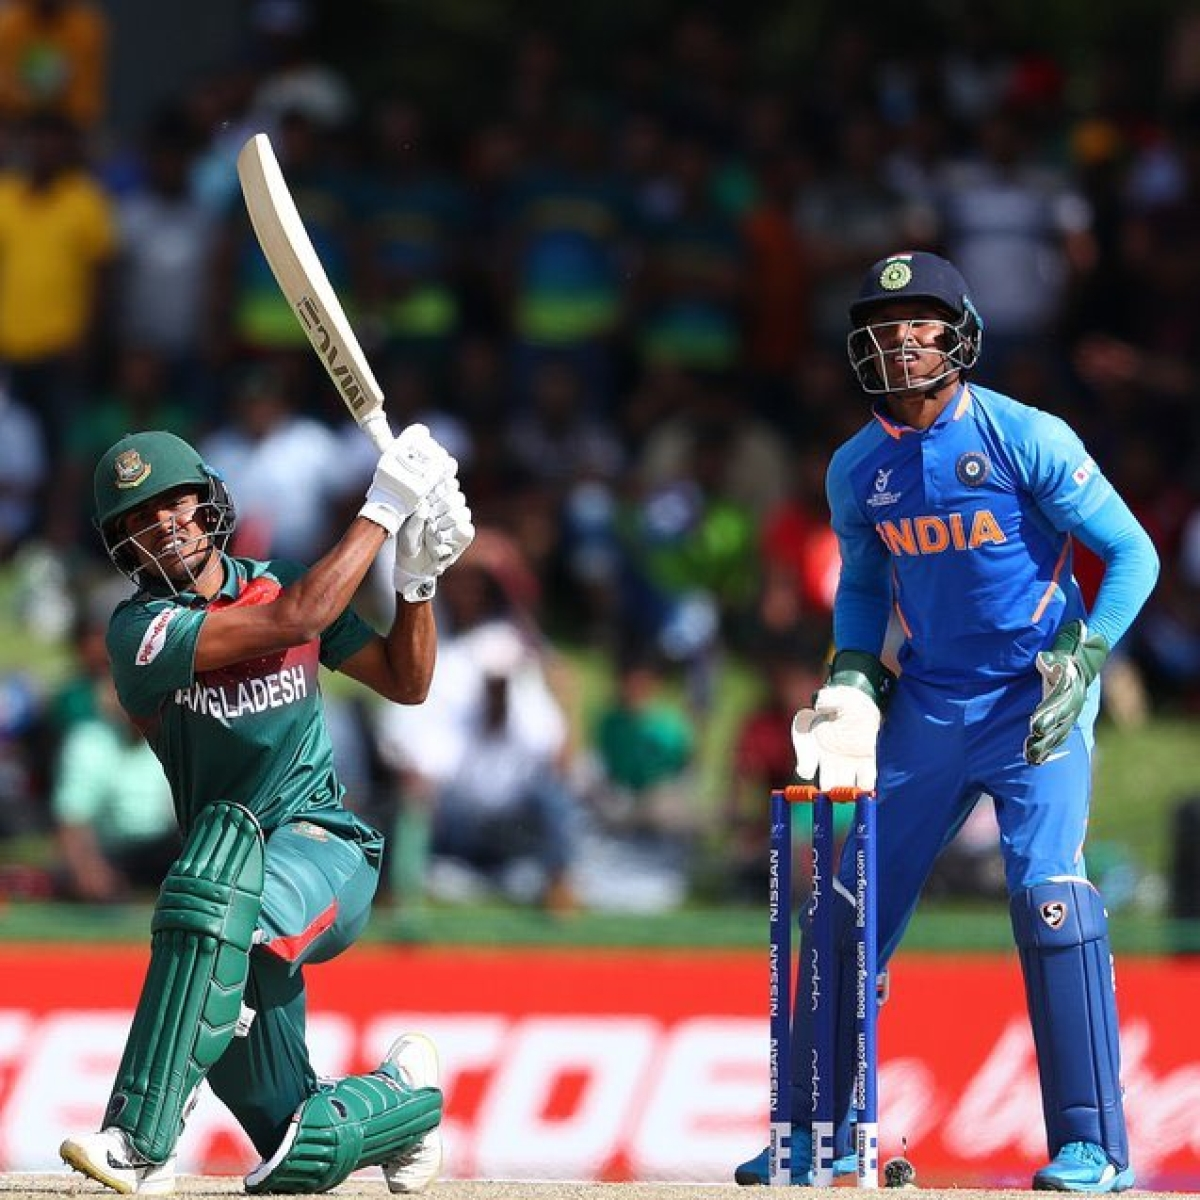 Bangladesh shock India to clinch their maiden ICC U-19 World Cup title